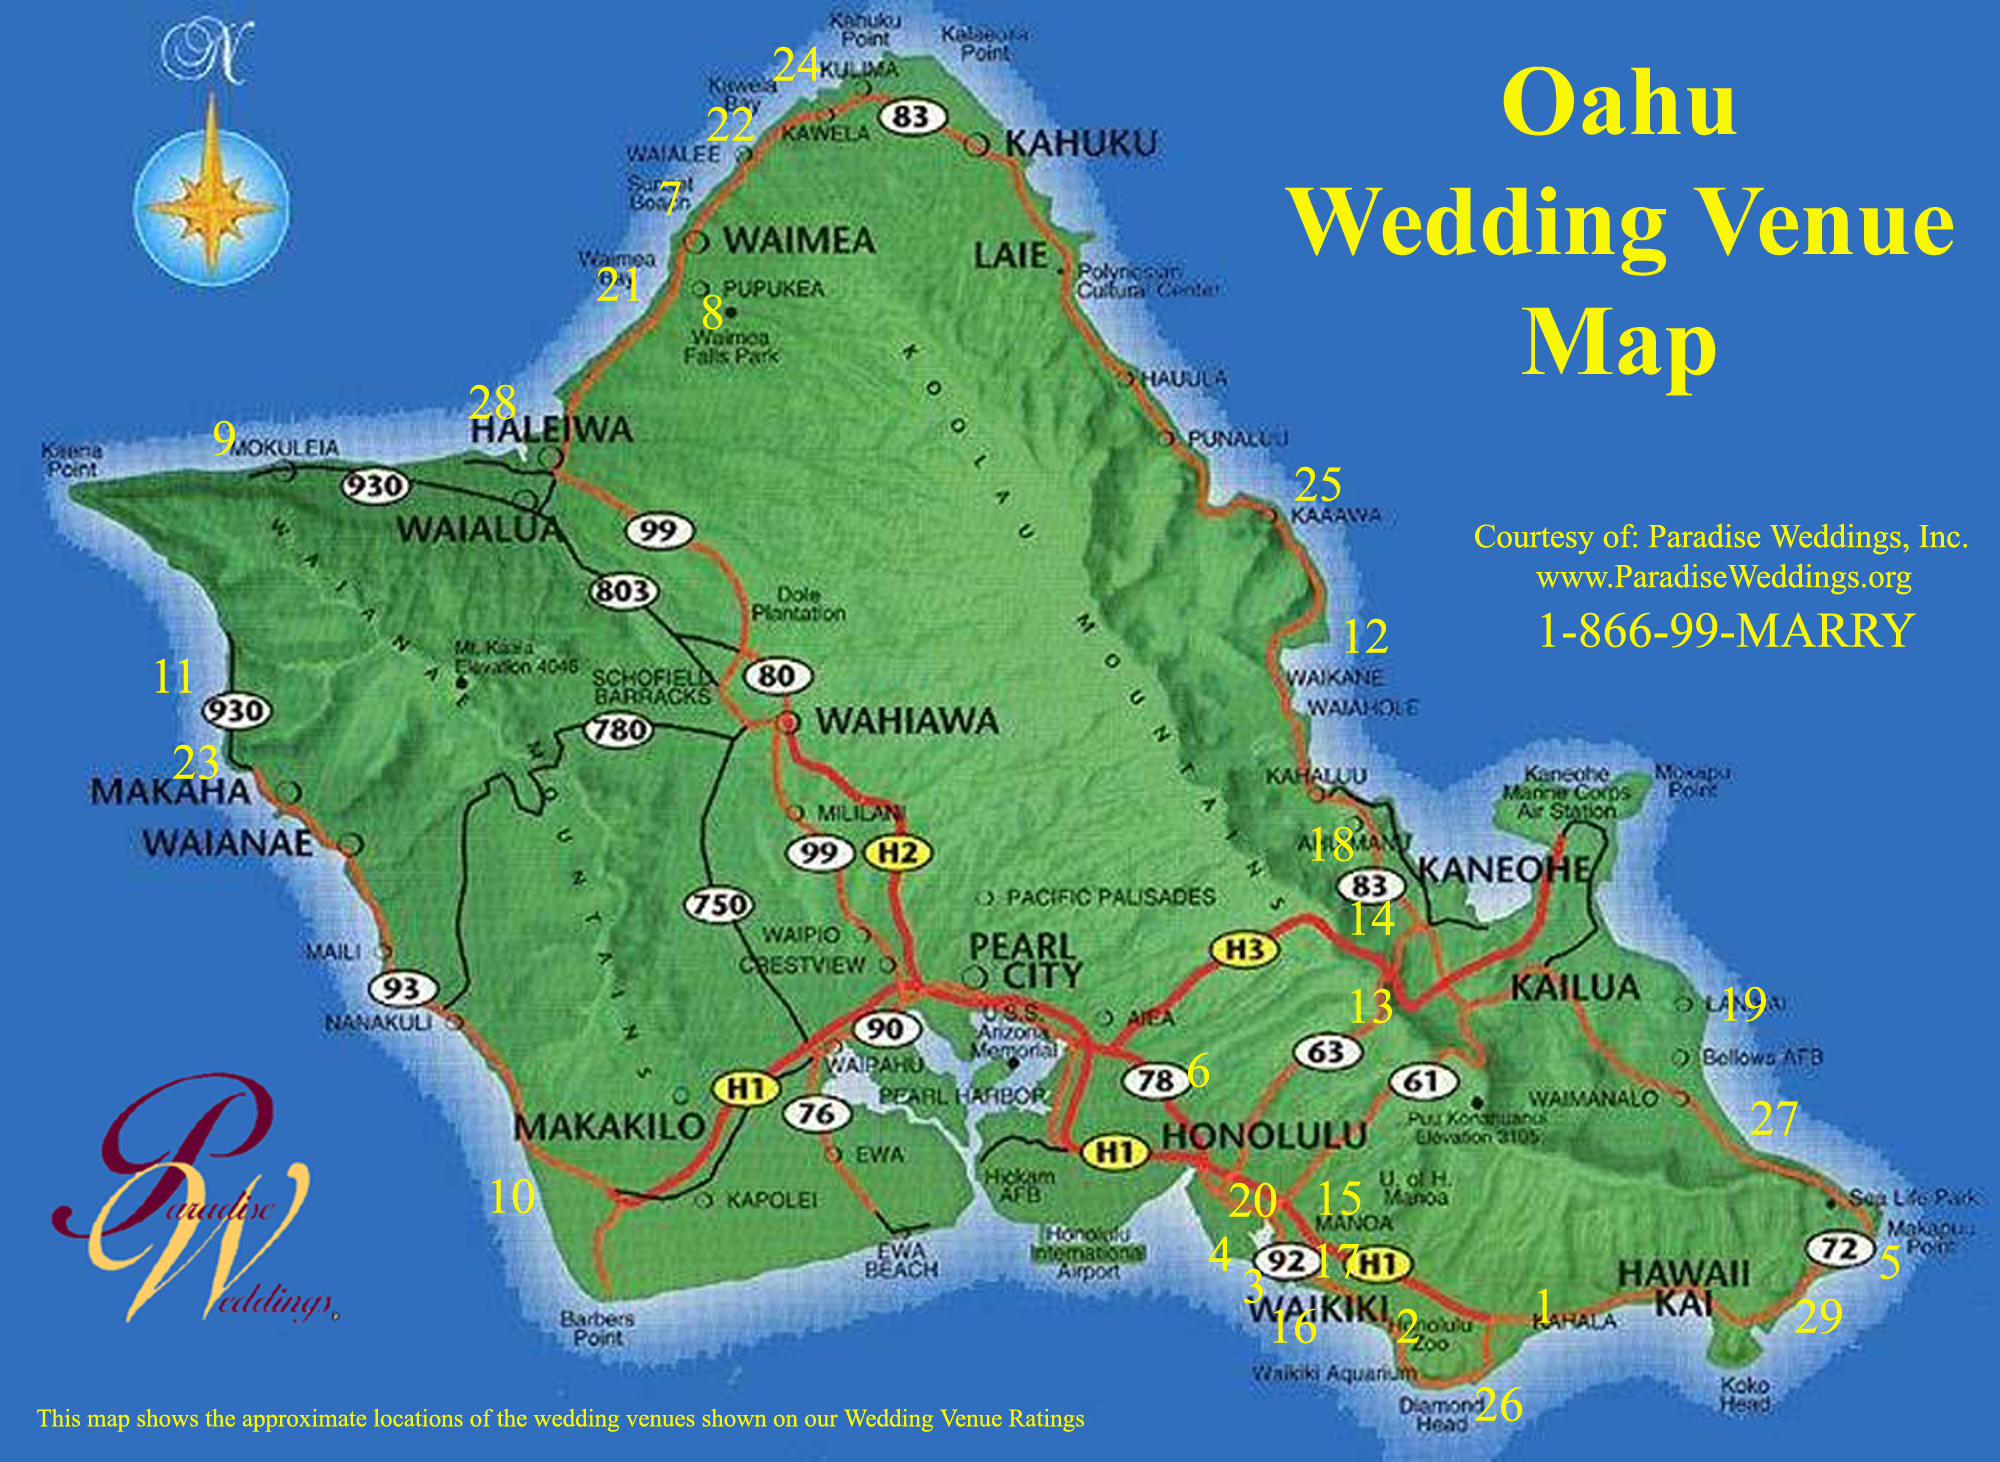 Oahu Wedding Venue Map Oahu Hawaii mappery – Tourist Map Of Oahu